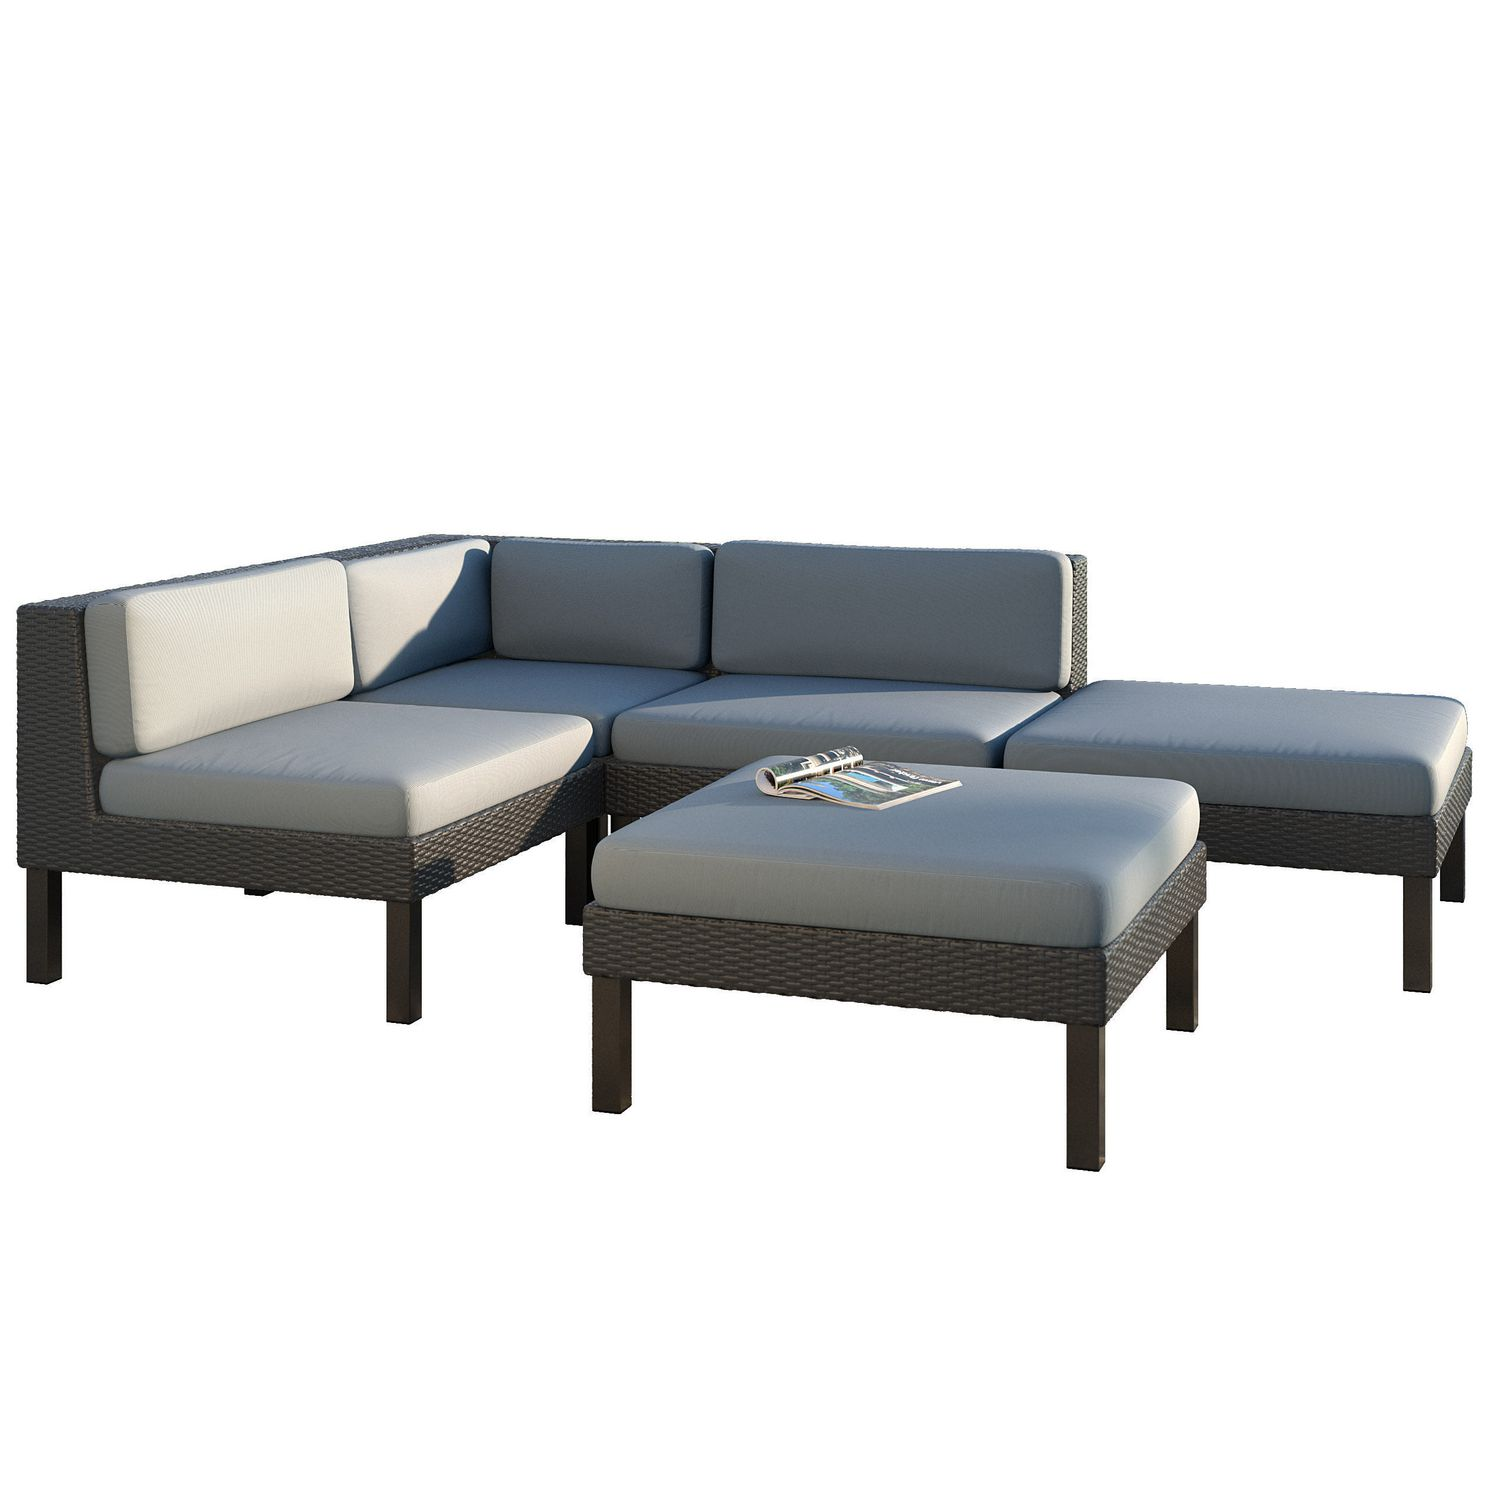 CorLiving PPO 801 Z Oakland Sectional with Chaise Lounge Patio Set